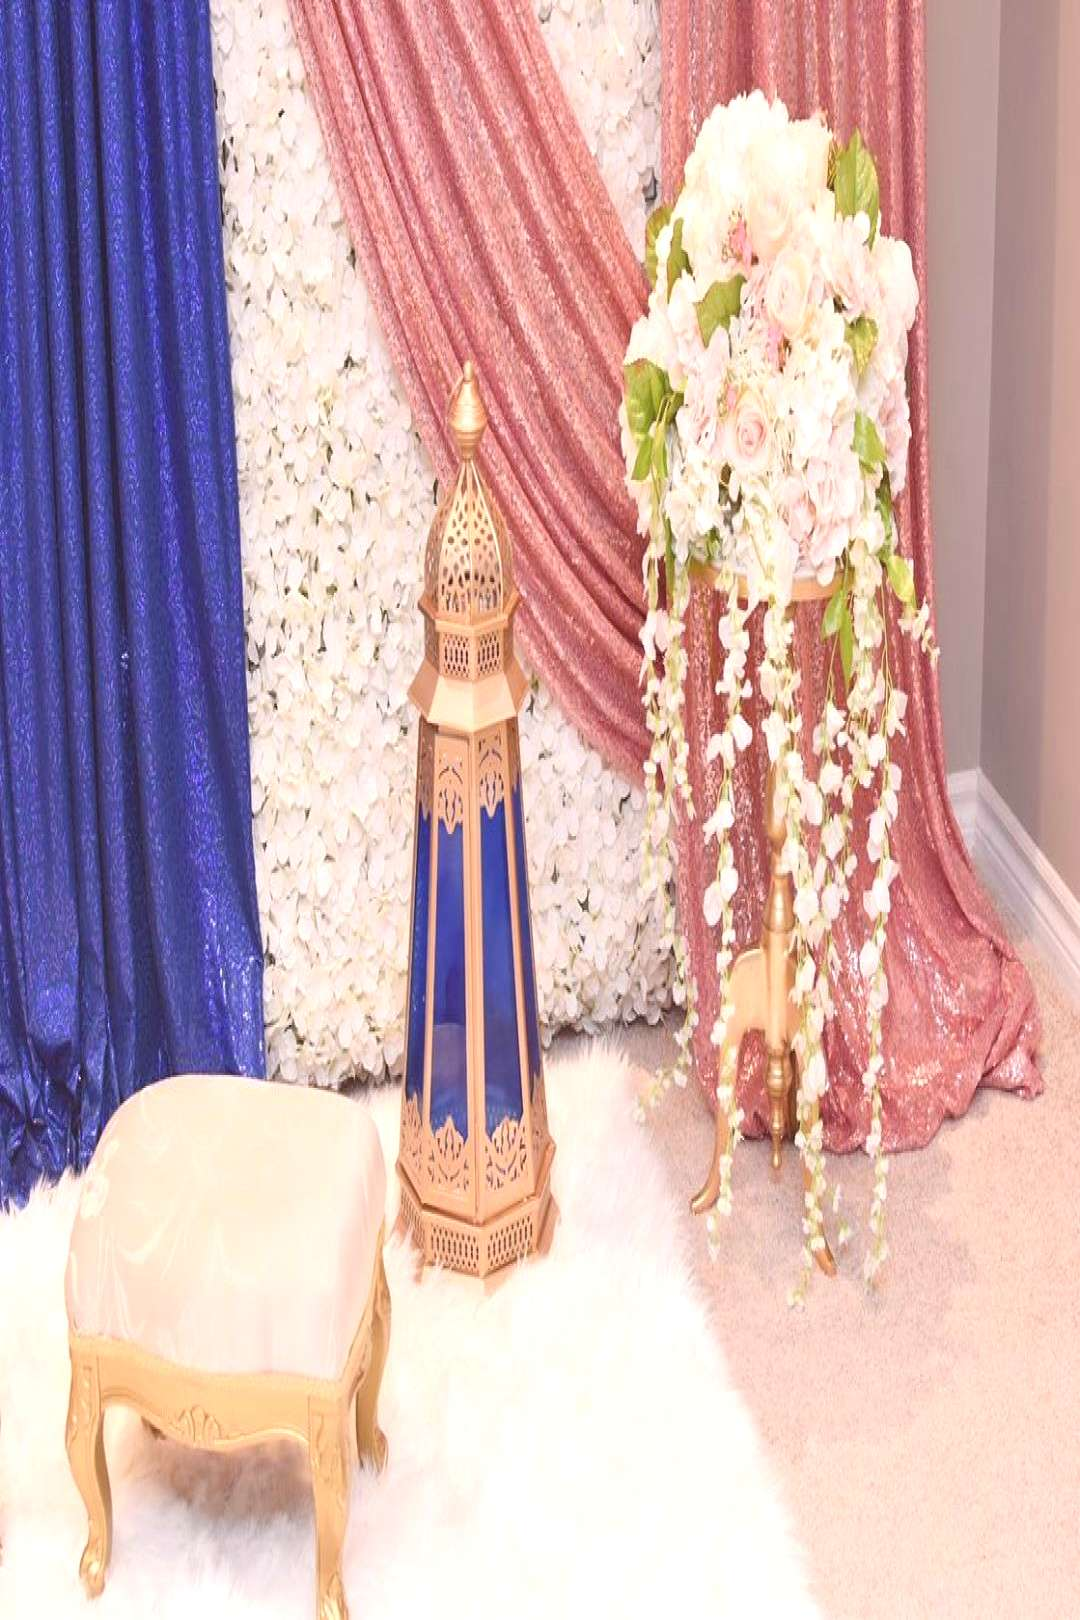 Sometimes simplicity is the most elegant. . . Backdrop & Decor .